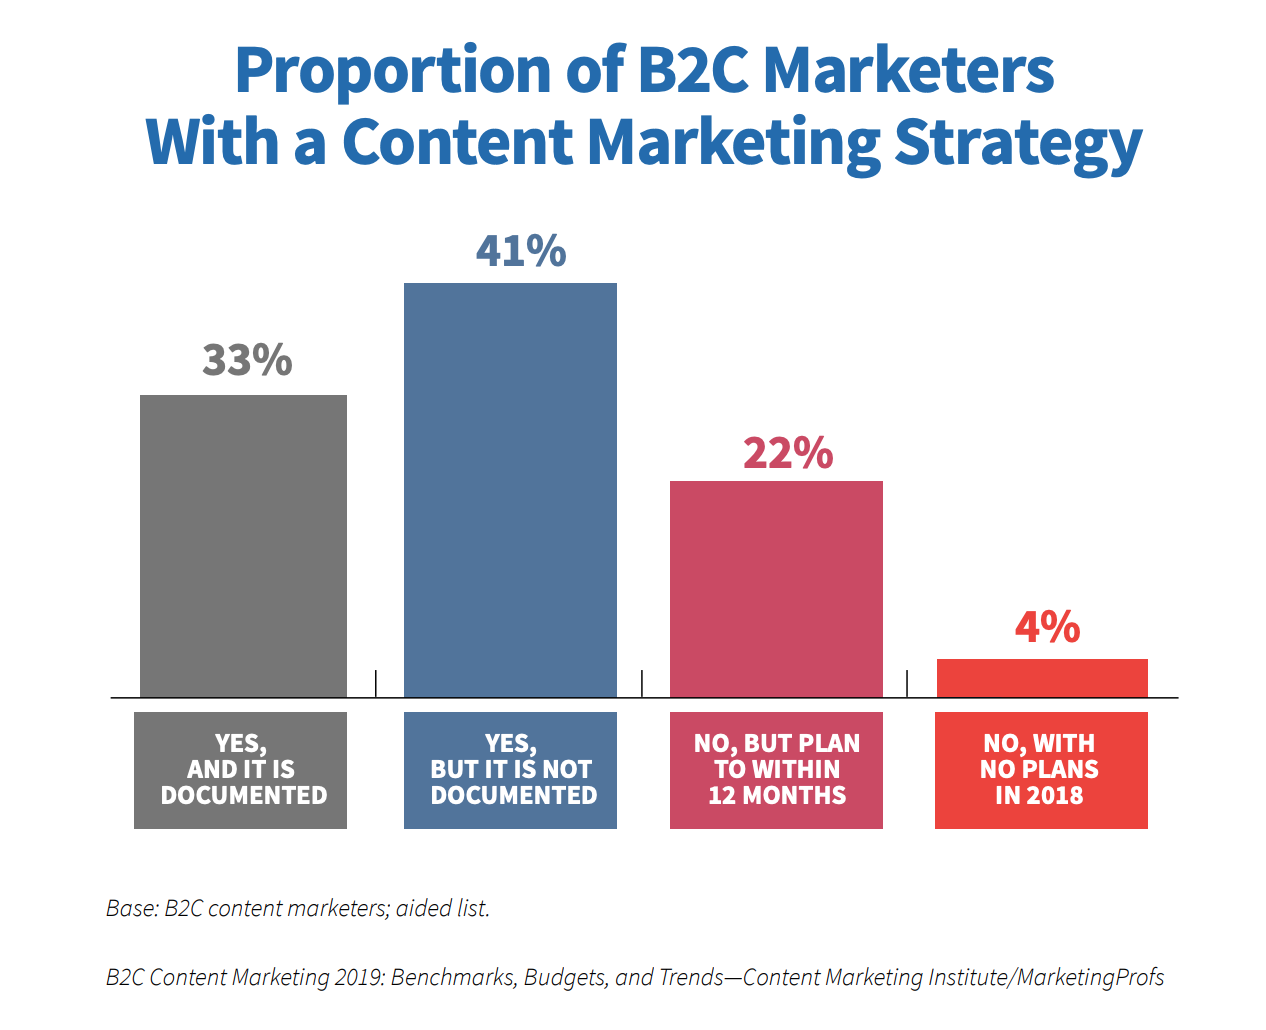 Proportion of B2C marketers with a content marketing strategy